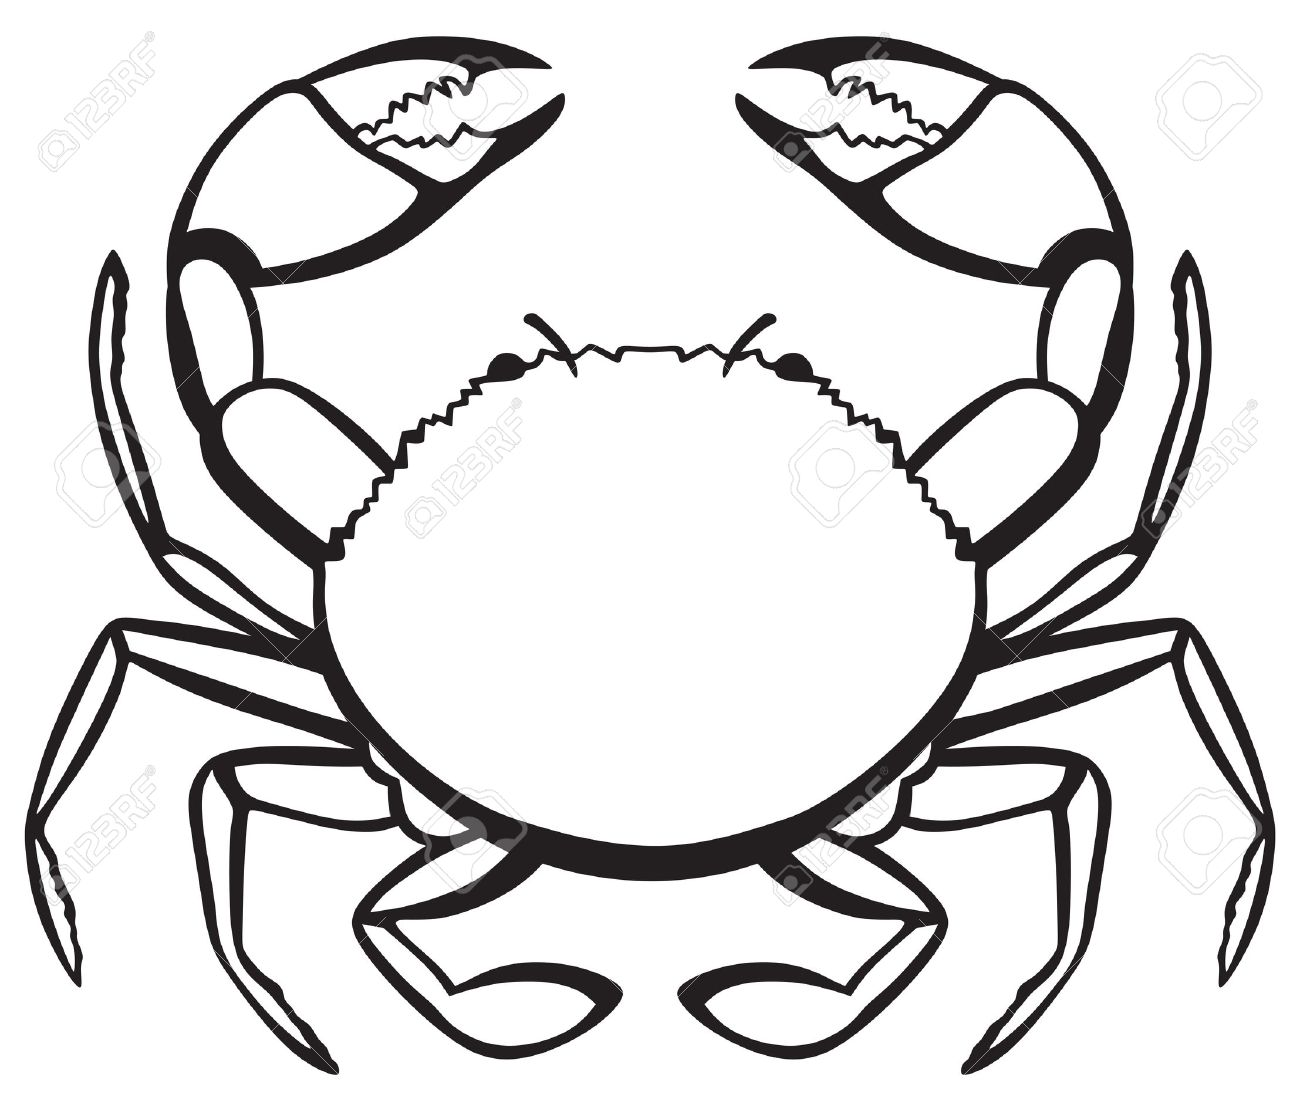 Crab clipart black and white 7 » Clipart Station.